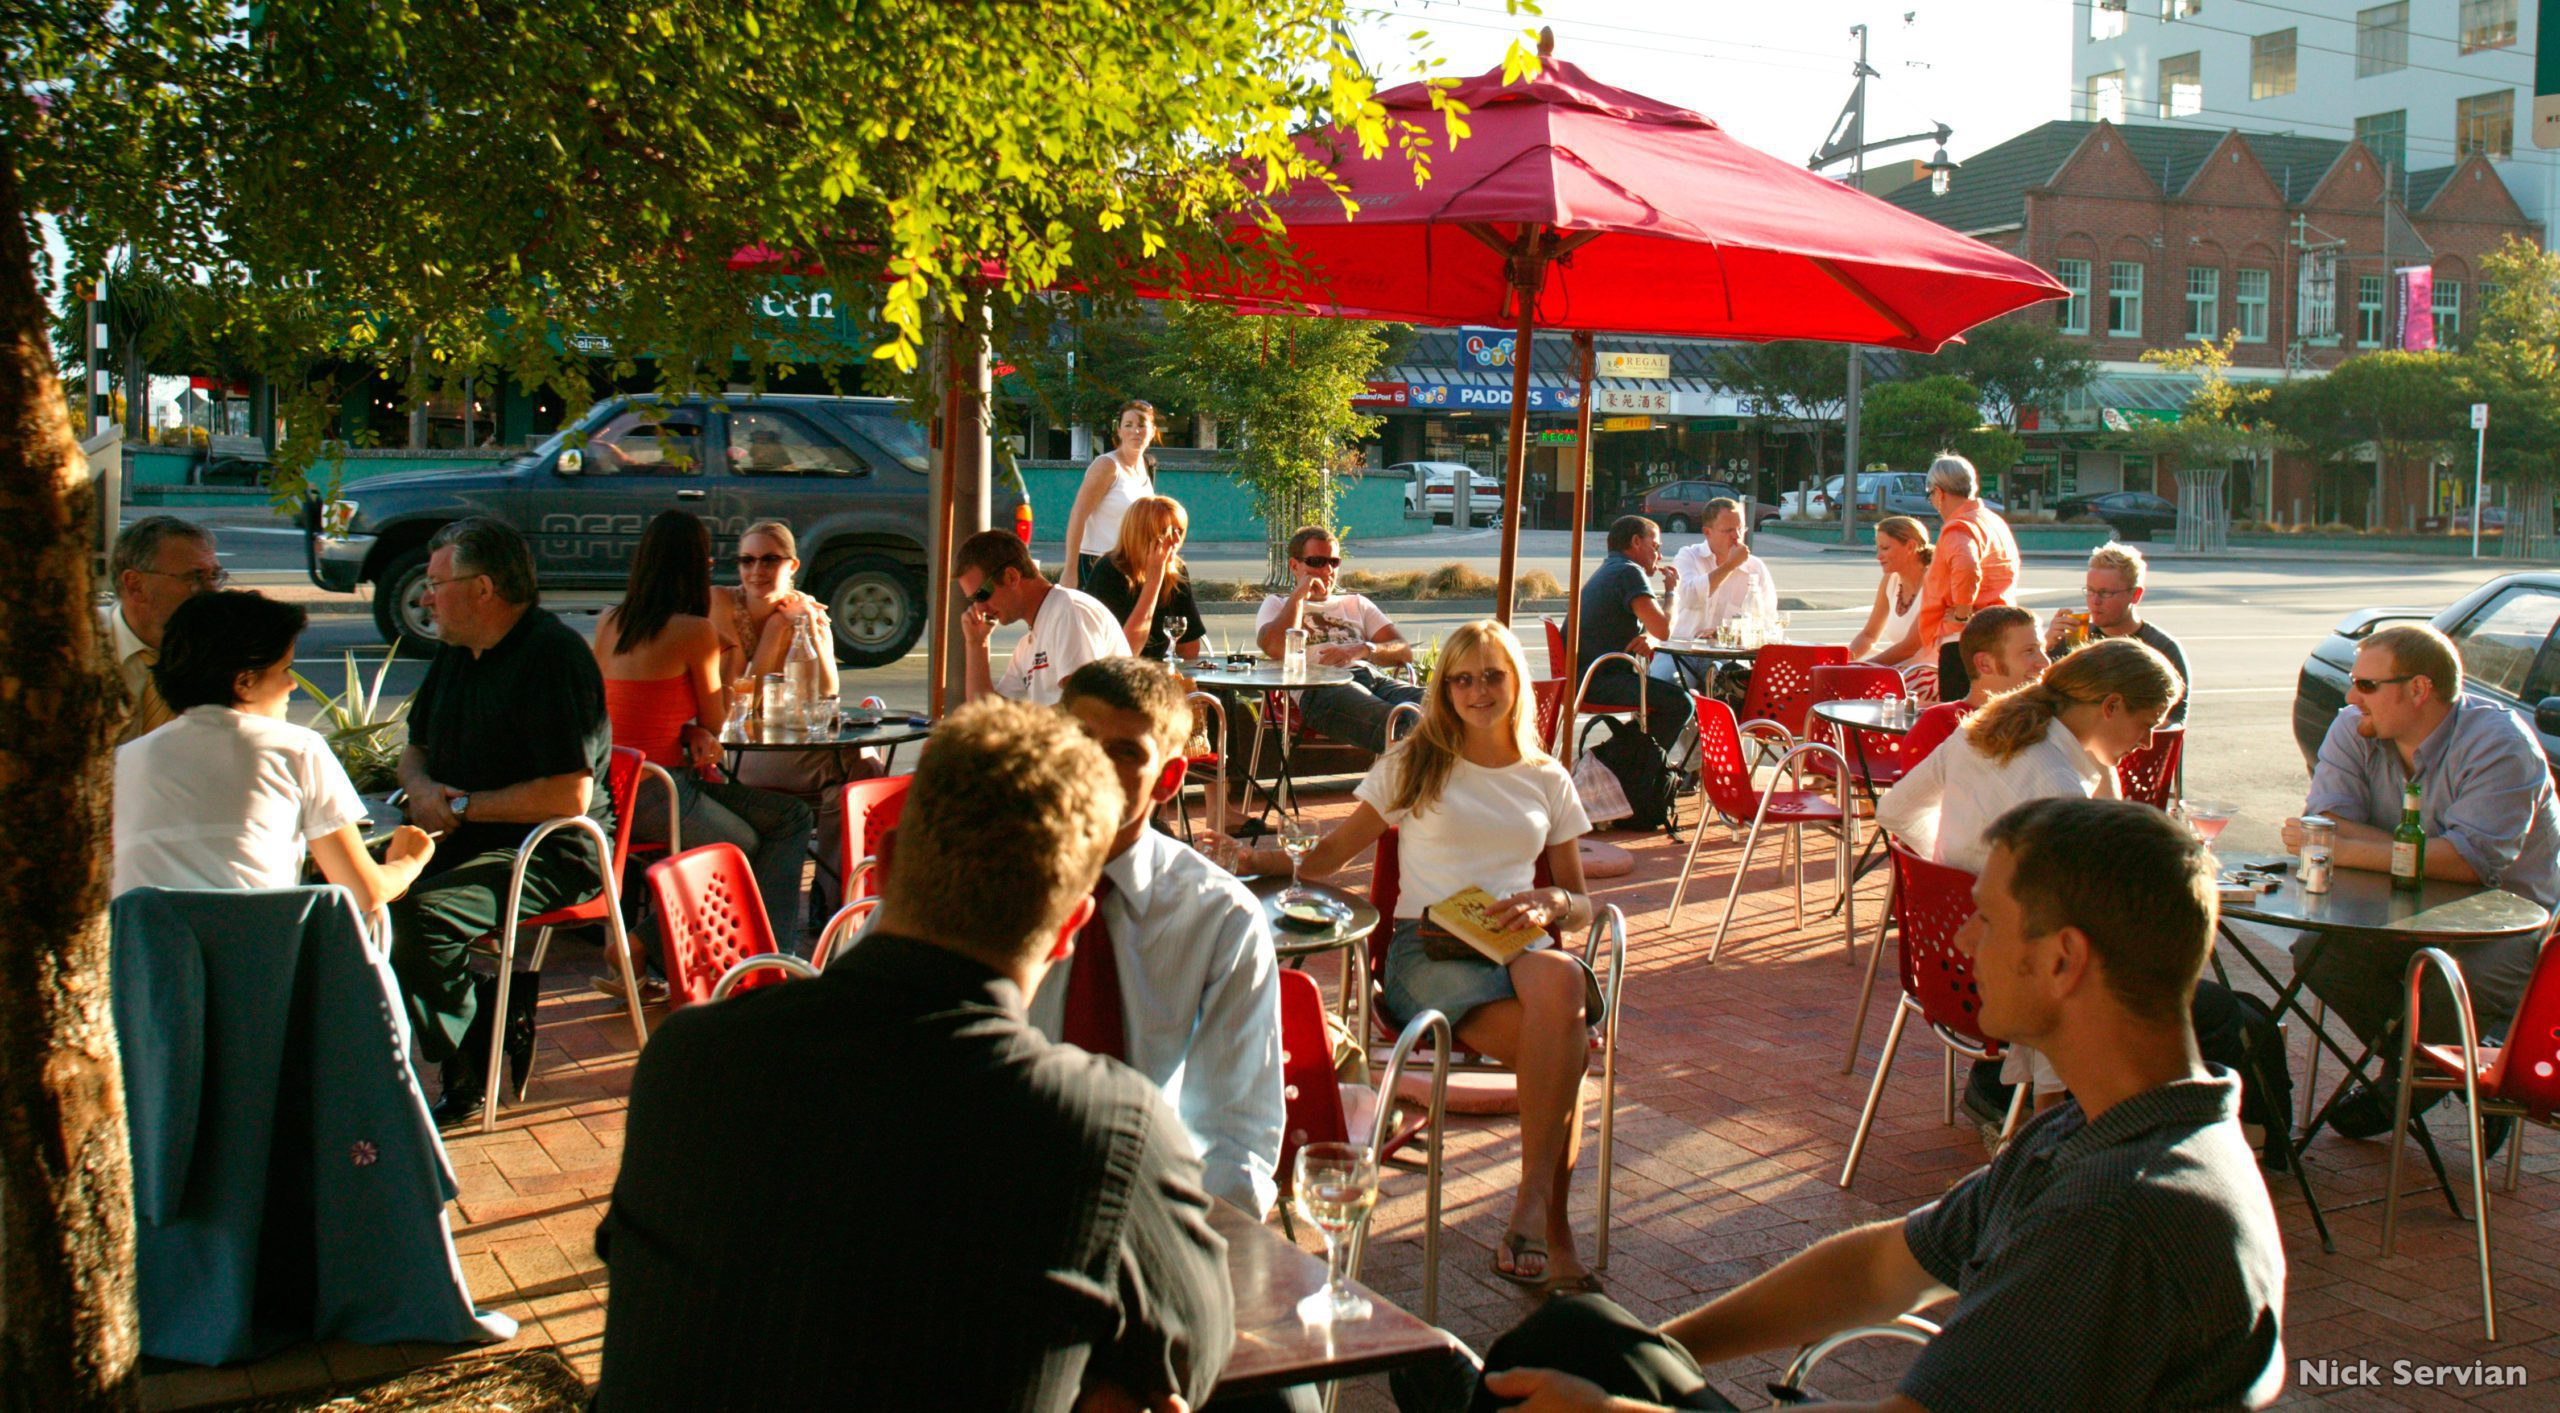 people eating and drink outside beneath umbrellas at a cafe in Wellington